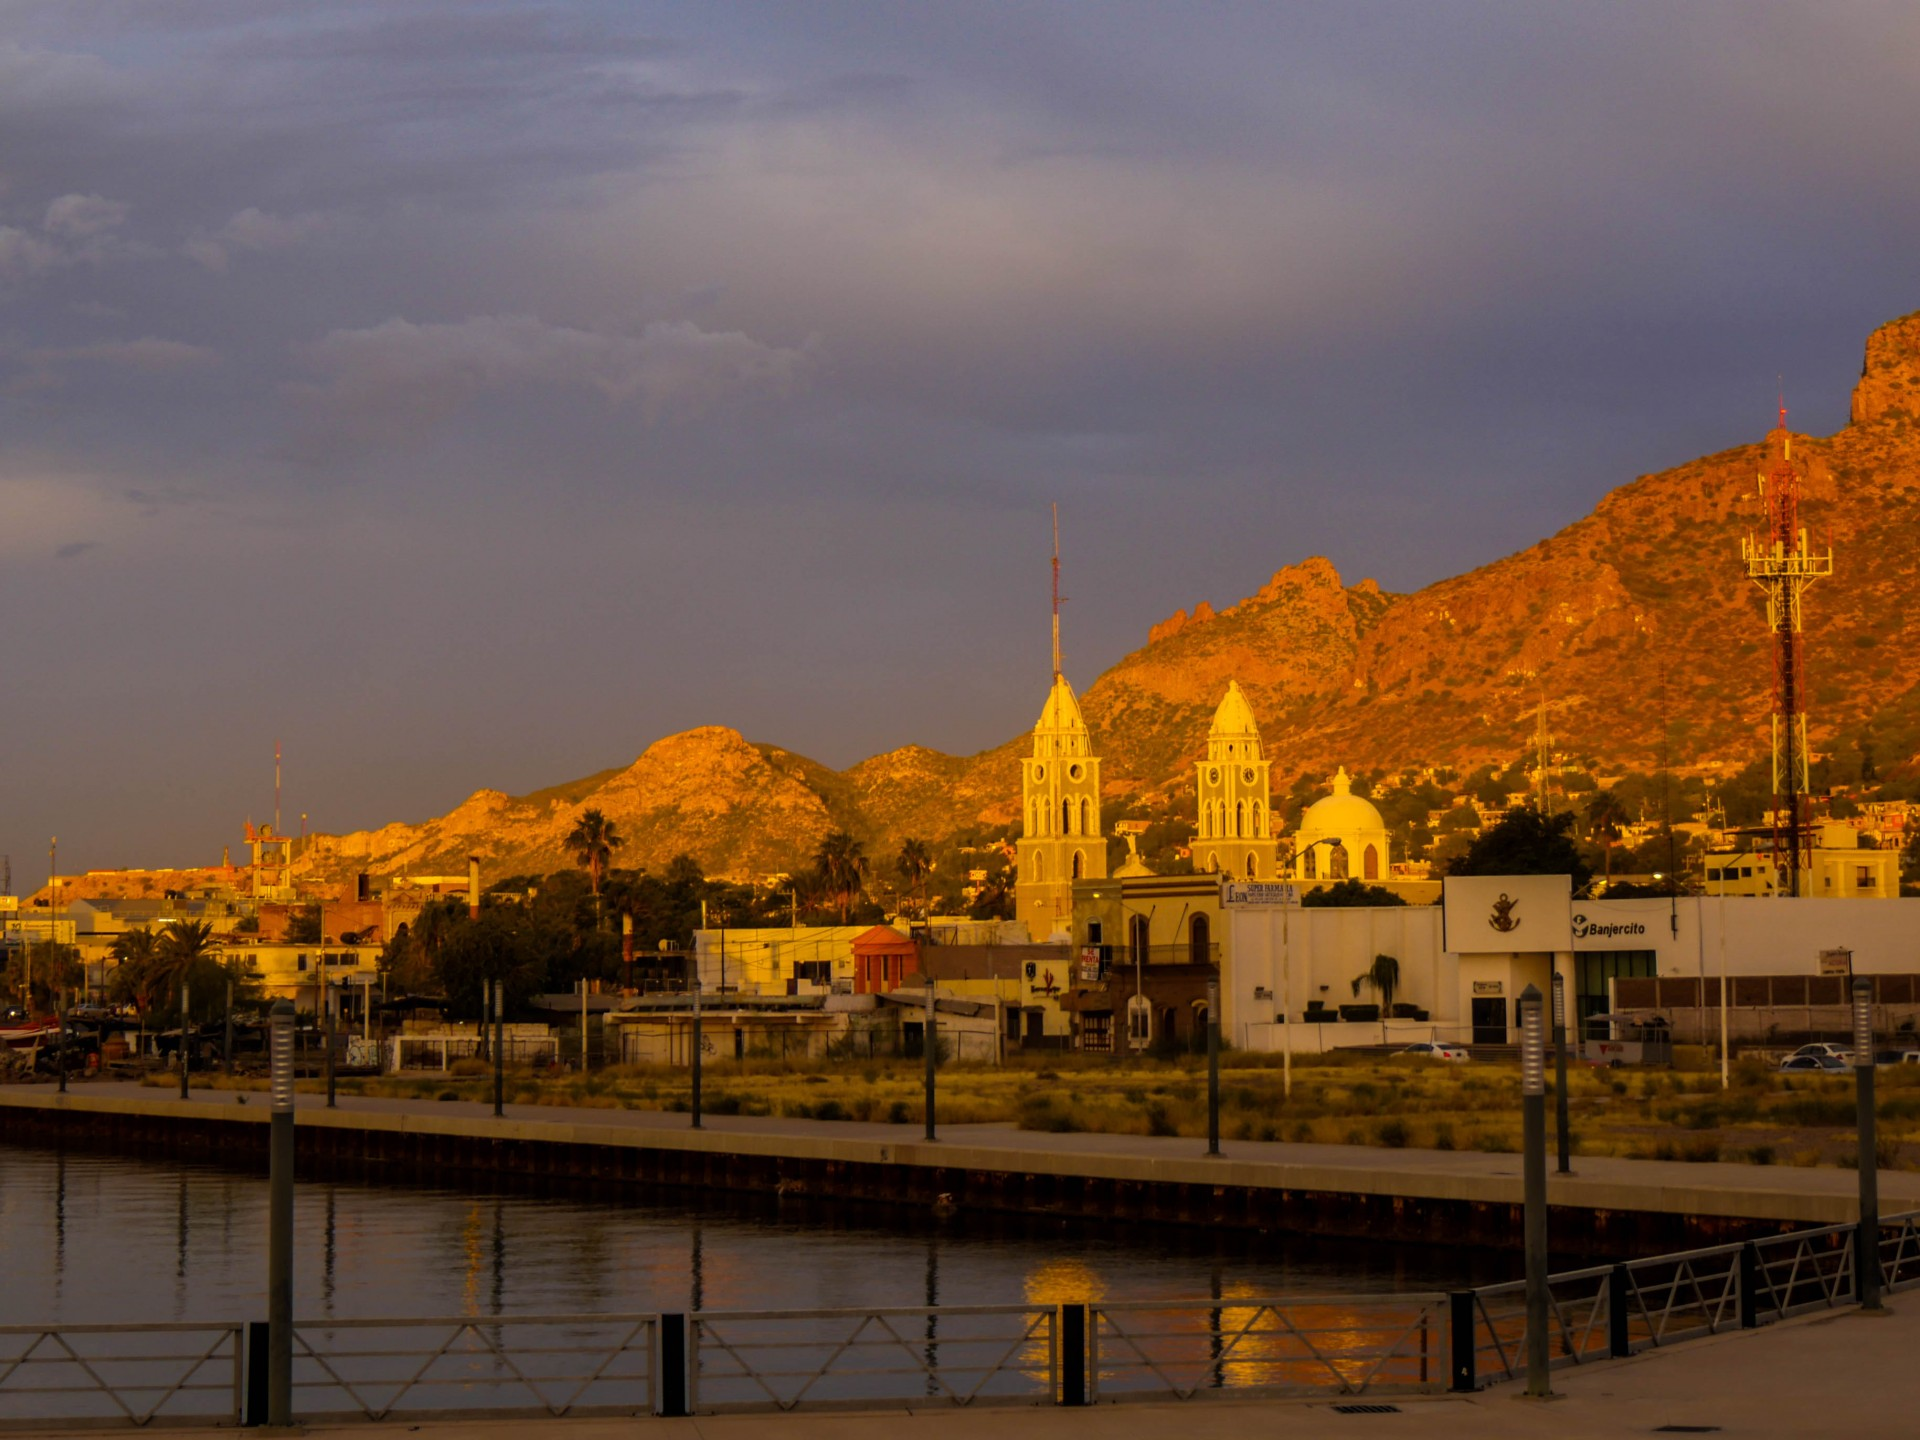 Morning light in the center of Guaymas.